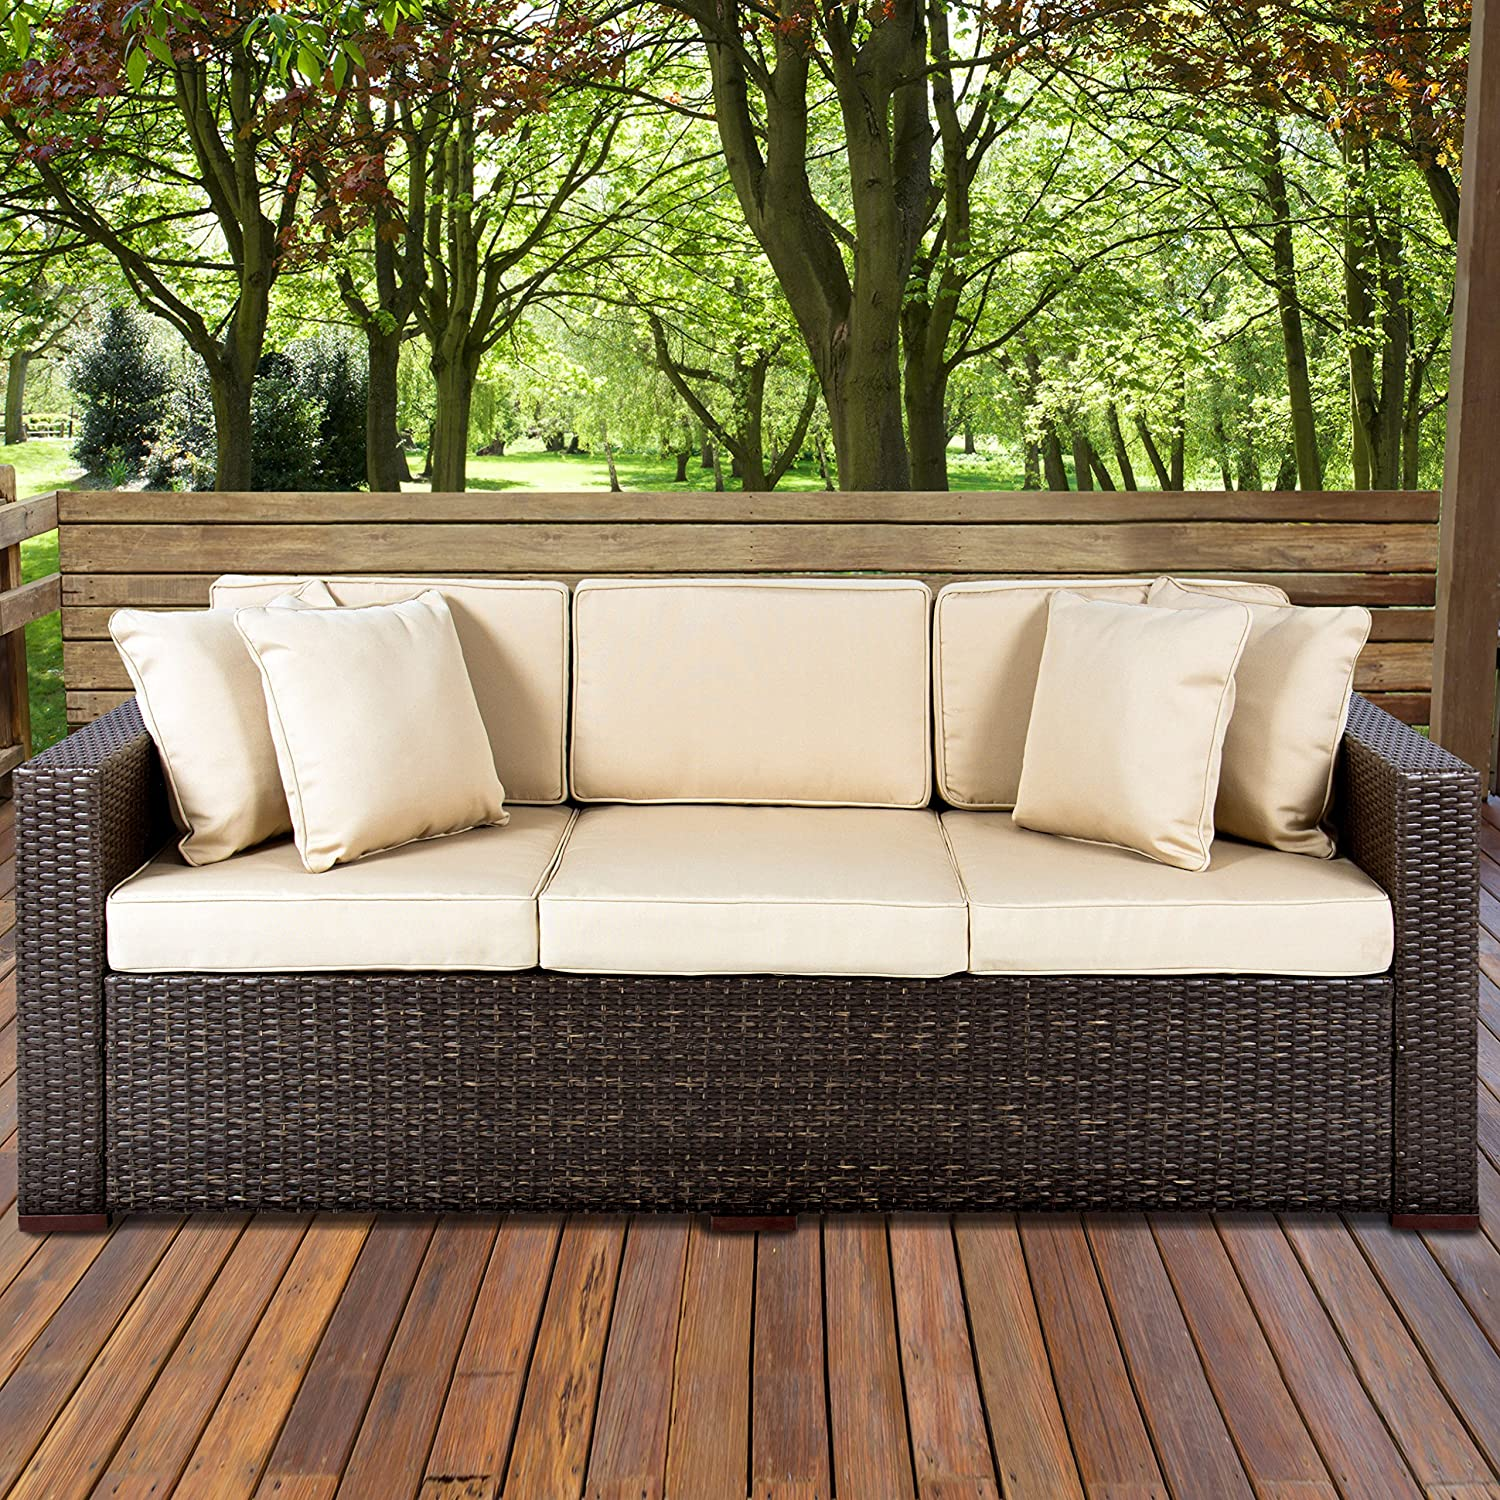 Superbe Amazon.com : Best Choice Products 3 Seat Outdoor Wicker Sofa Couch Patio  Furniture W/Steel Frame And Removable Cushions   Brown : Garden U0026 Outdoor